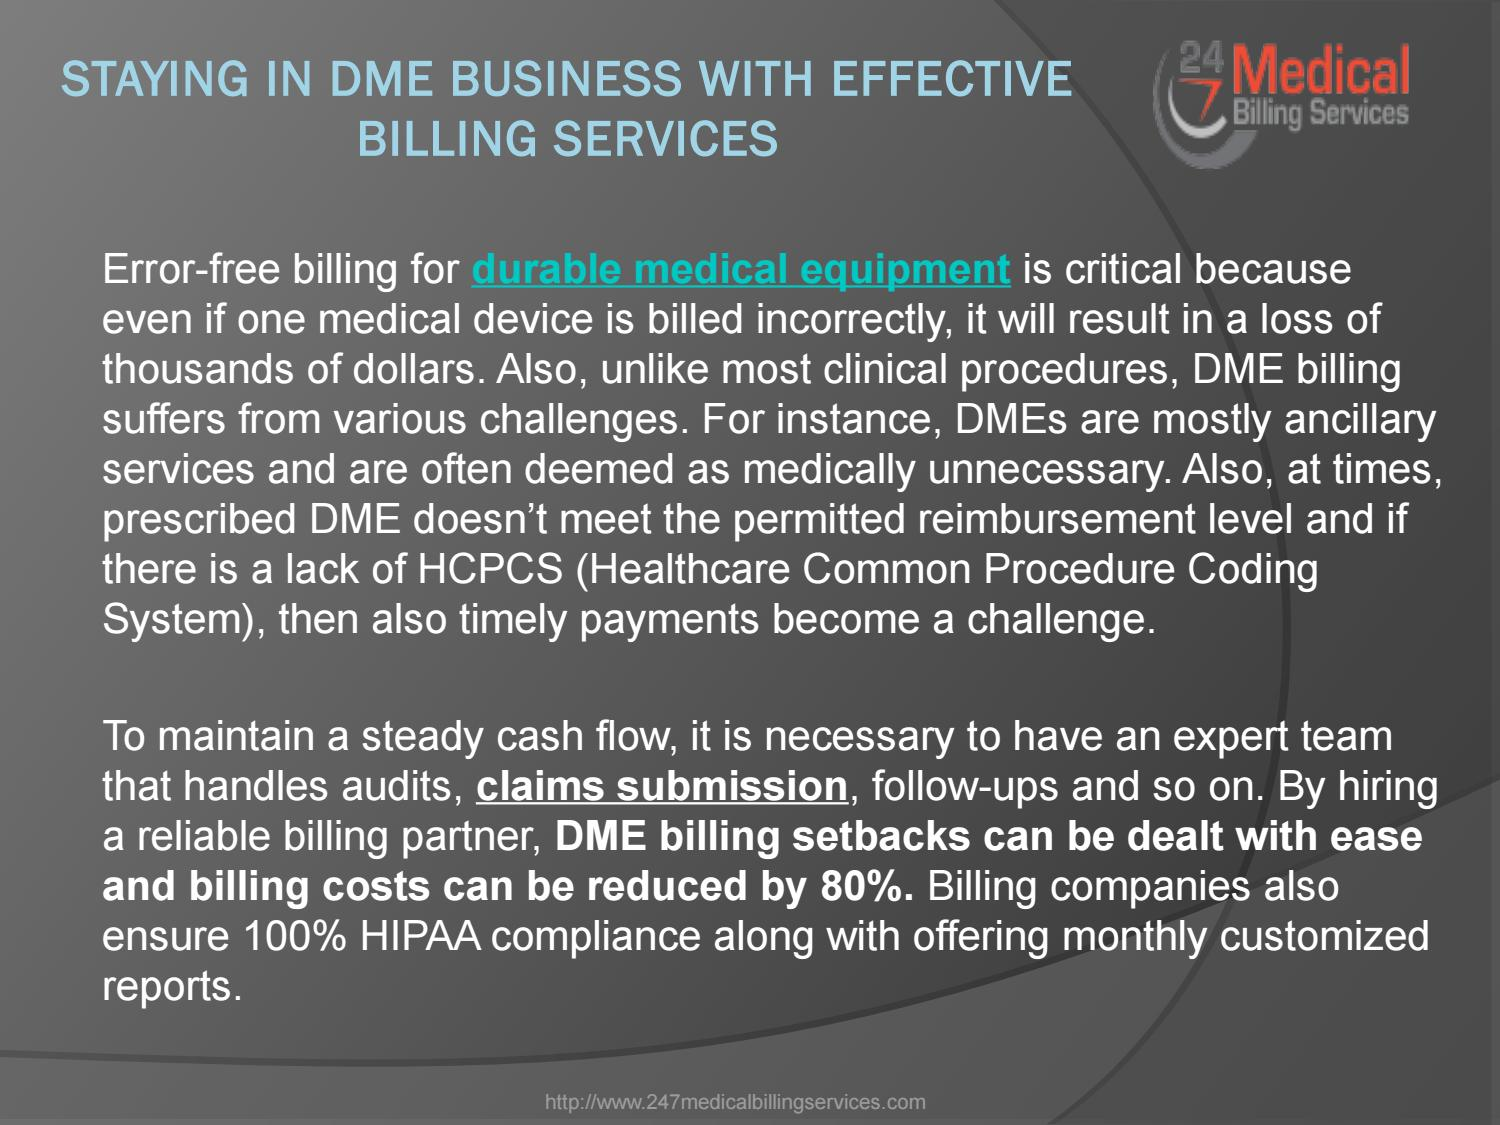 Staying in DME Business with Effective Billing Services by